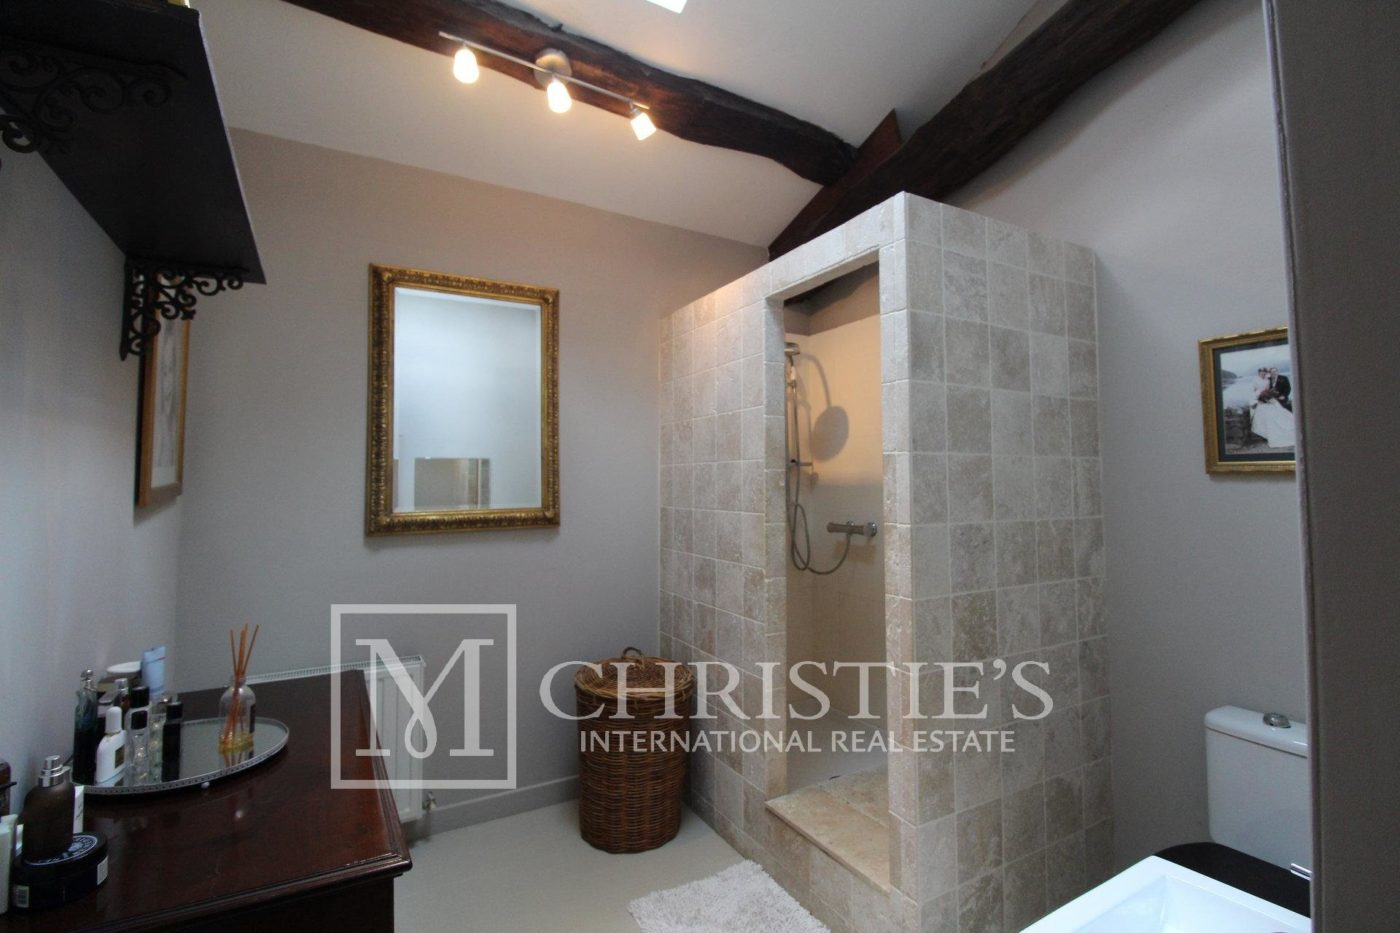 Bathroom - Attractive AOC Côtes-de-Duras vineyard with residence, gîte and swimming pool